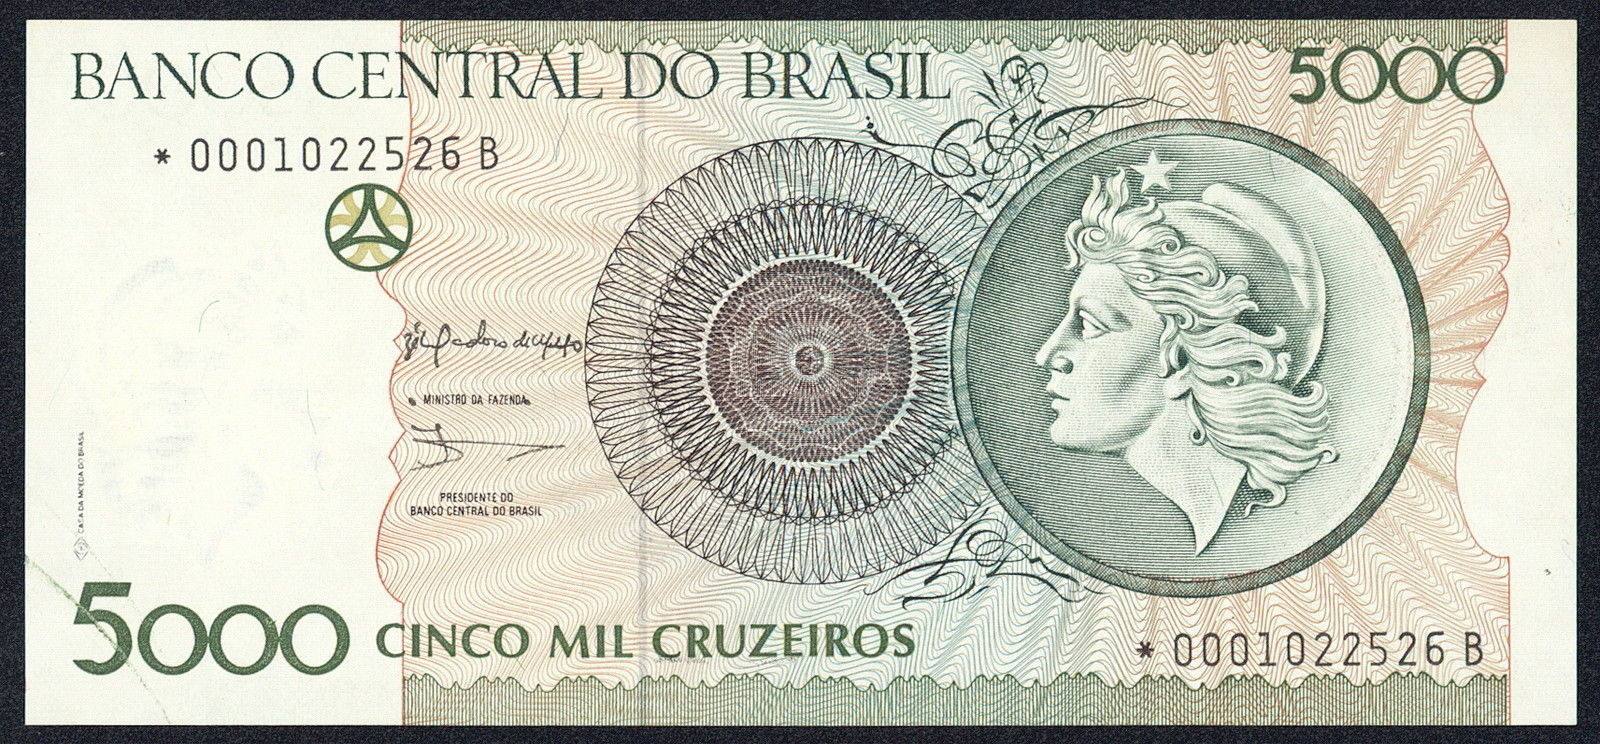 Brazil 5000 Cruzeiros Banknote 1990 World Banknotes Amp Coins Pictures Old Money